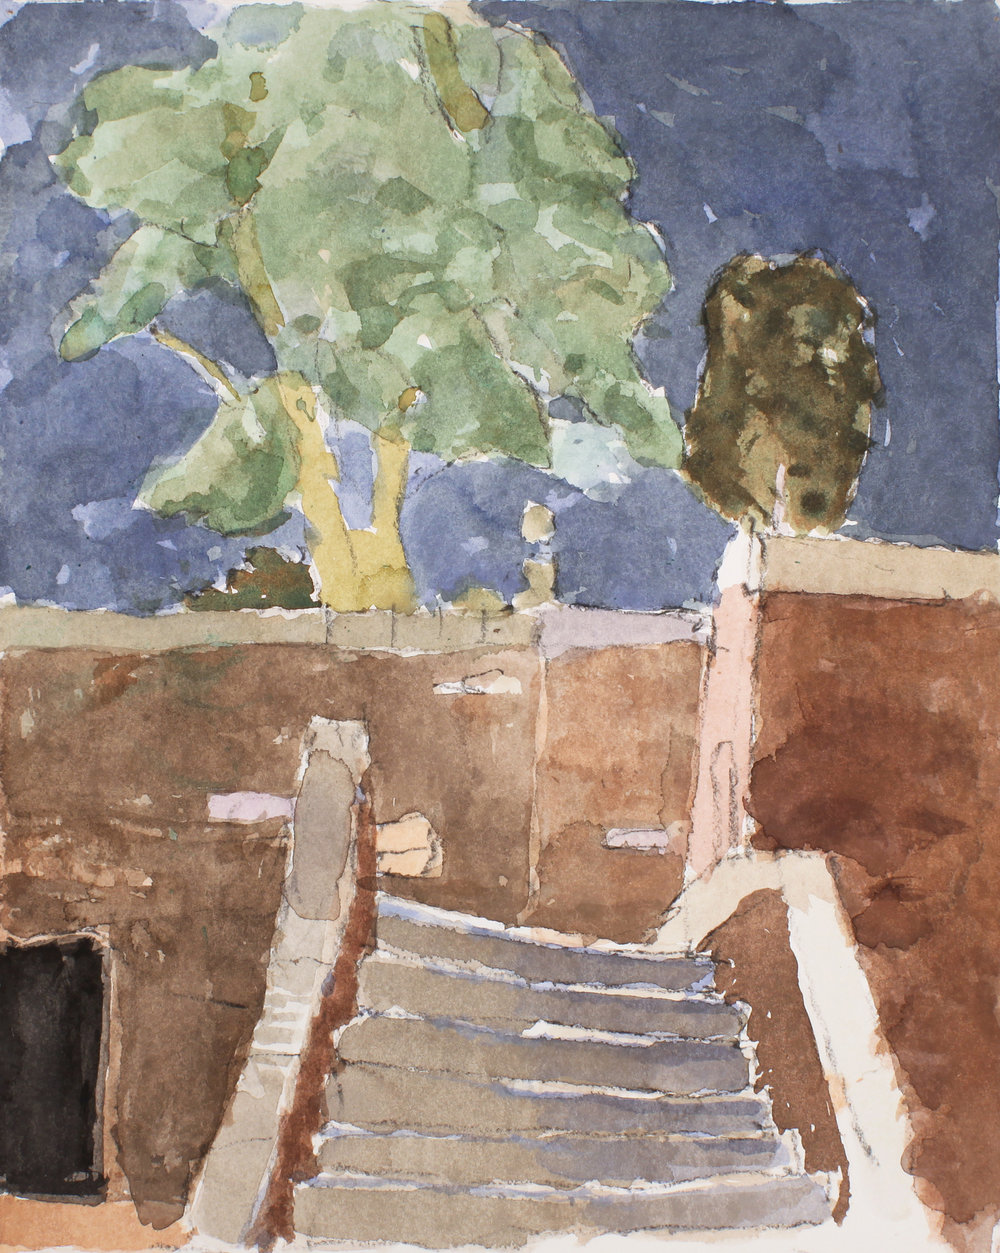 1990s_Bridge_Near_the_Servi_watercolour_and_pencil_on_paper_14x11in_WPF315.jpg